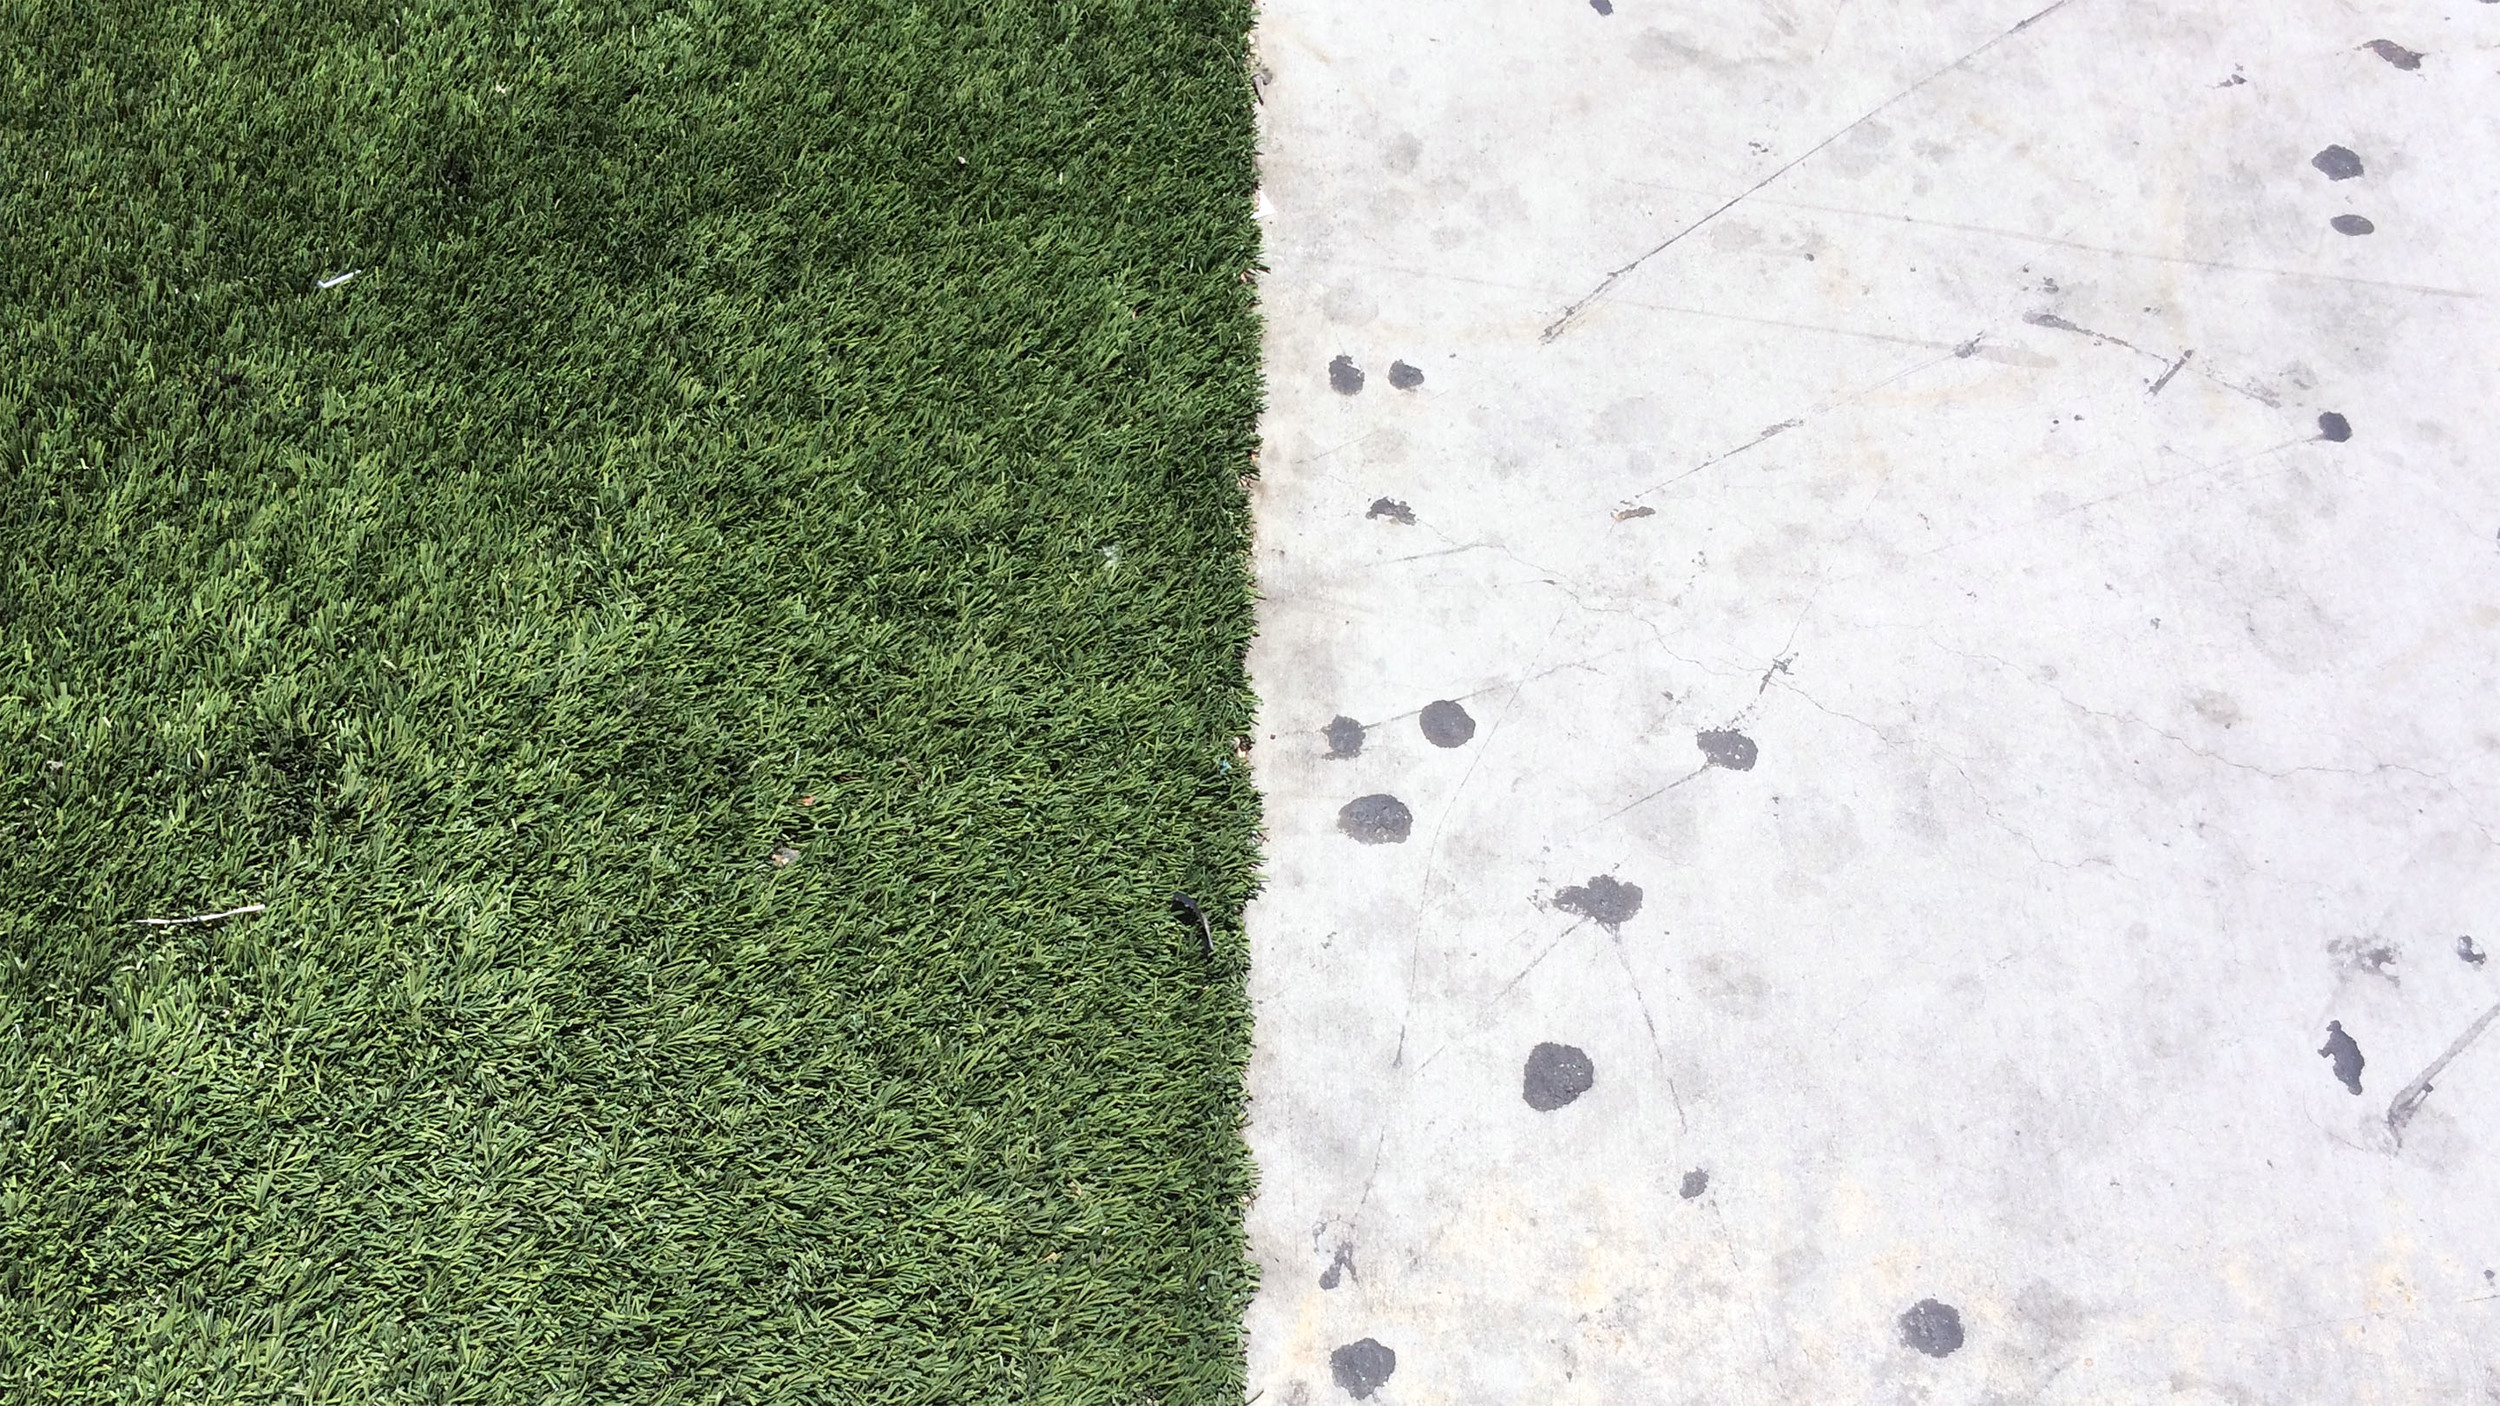 A hard divide between concrete and synthetic turf on a sidewalk on Los Angeles Street in the Skid Row neighborhood of Downtown Los Angeles. (Photograph by Ian Besler)